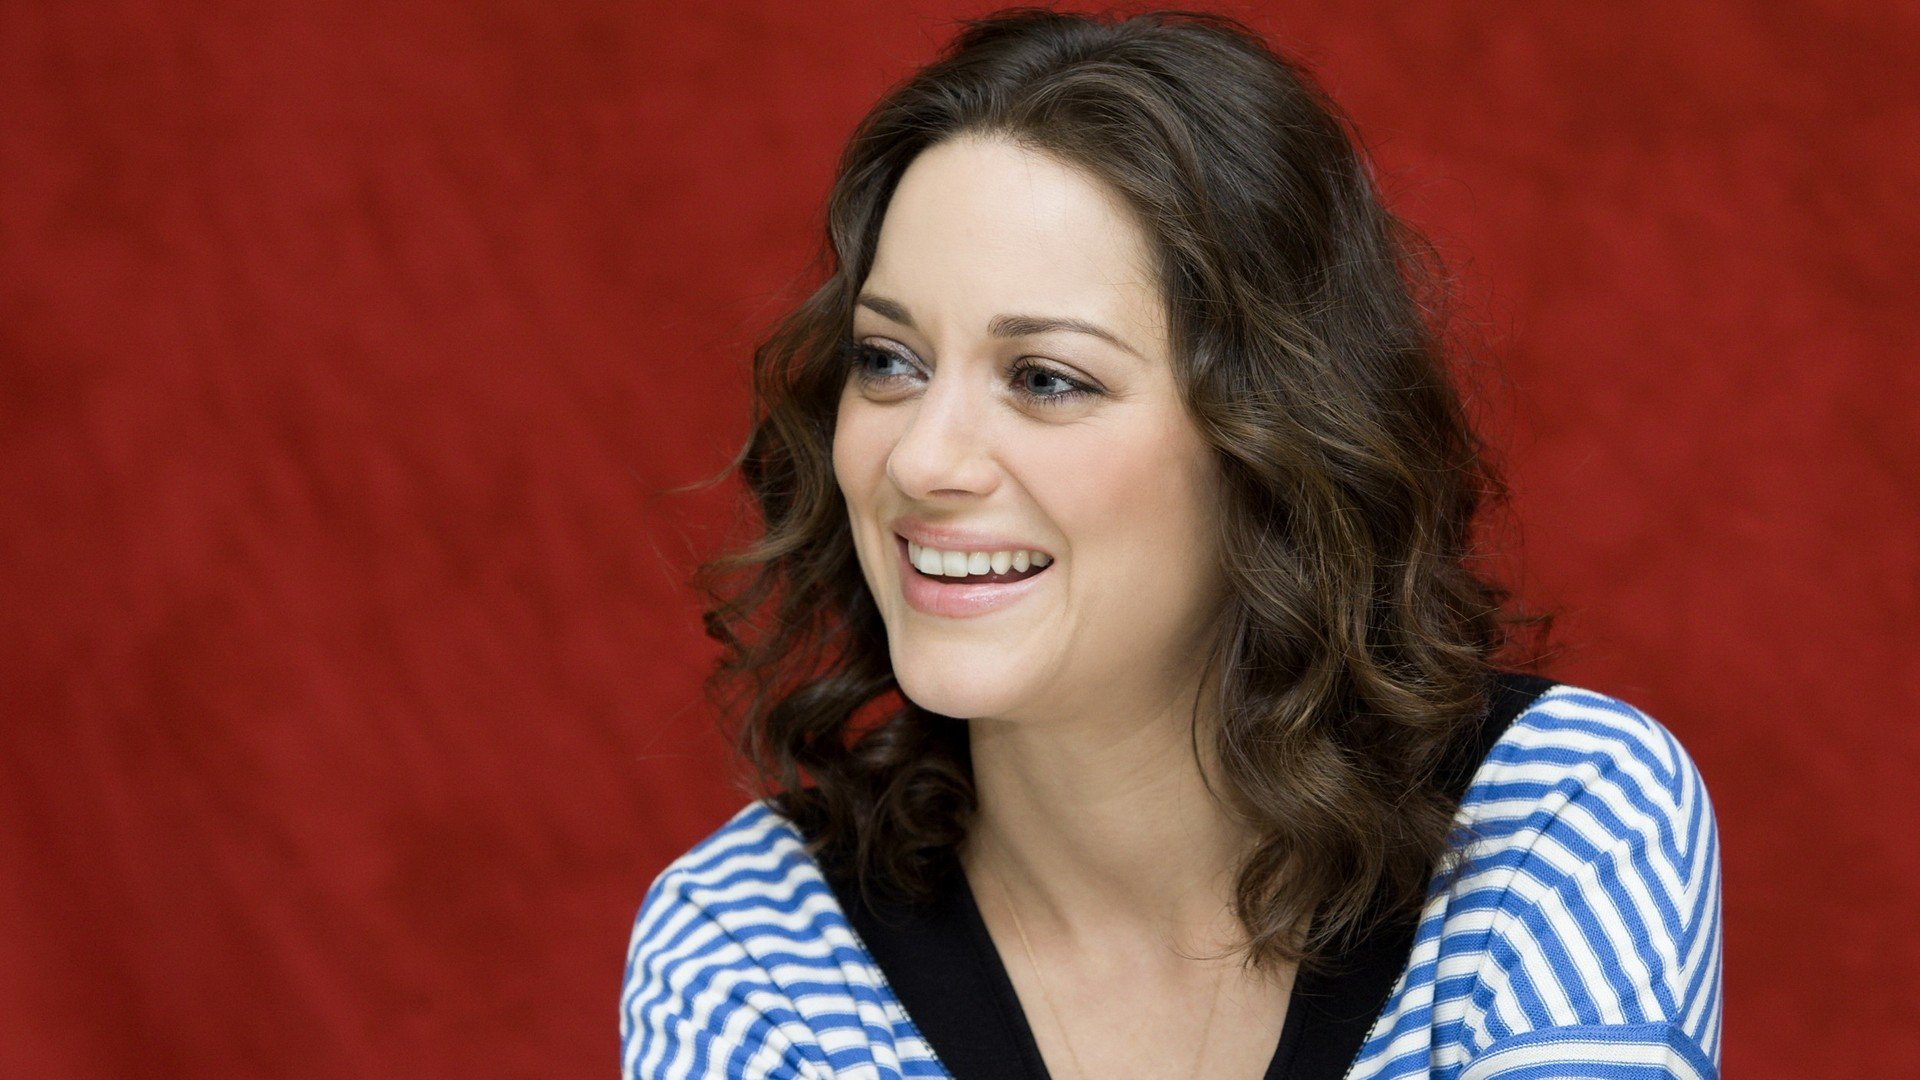 High resolution Marion Cotillard hd 1920x1080 background ID:146135 for PC